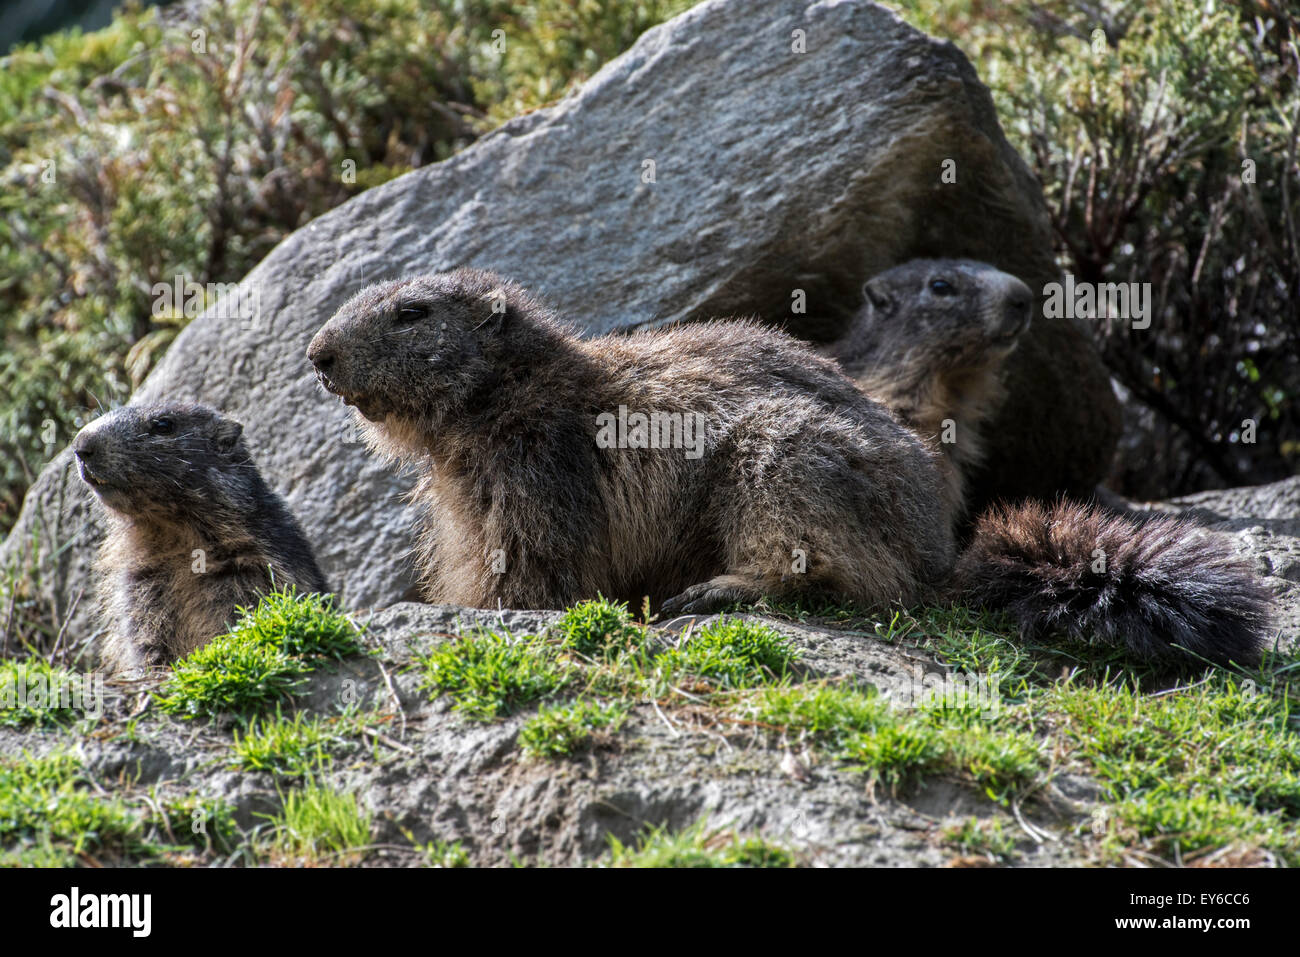 Alpine marmots (Marmota marmota) at burrow entrance under rock in the Alps - Stock Image